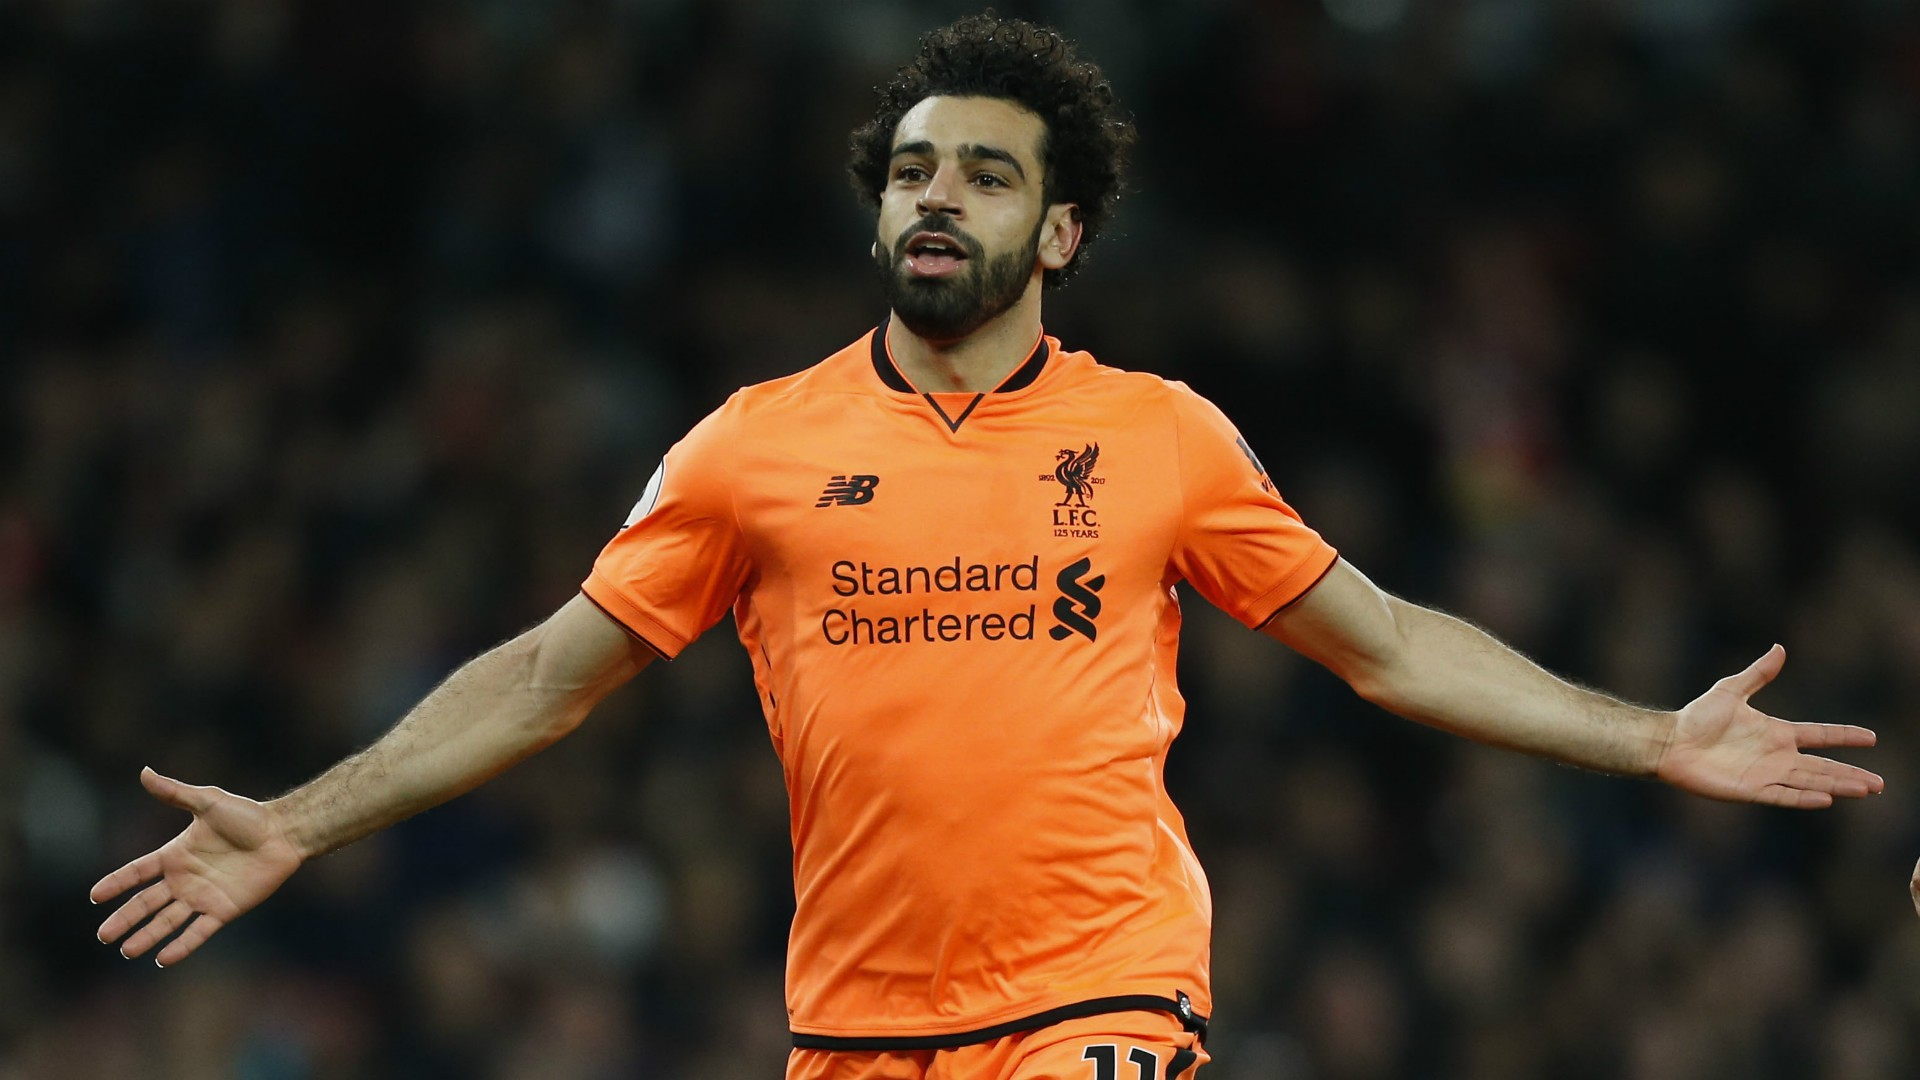 https://images.performgroup.com/di/library/GOAL/e7/89/mohamed-salah-arsenal-liverpool_1rhijianwtwue13zapx1inbuw3.jpg?t=2145805456&quality=90&w=0&h=1260